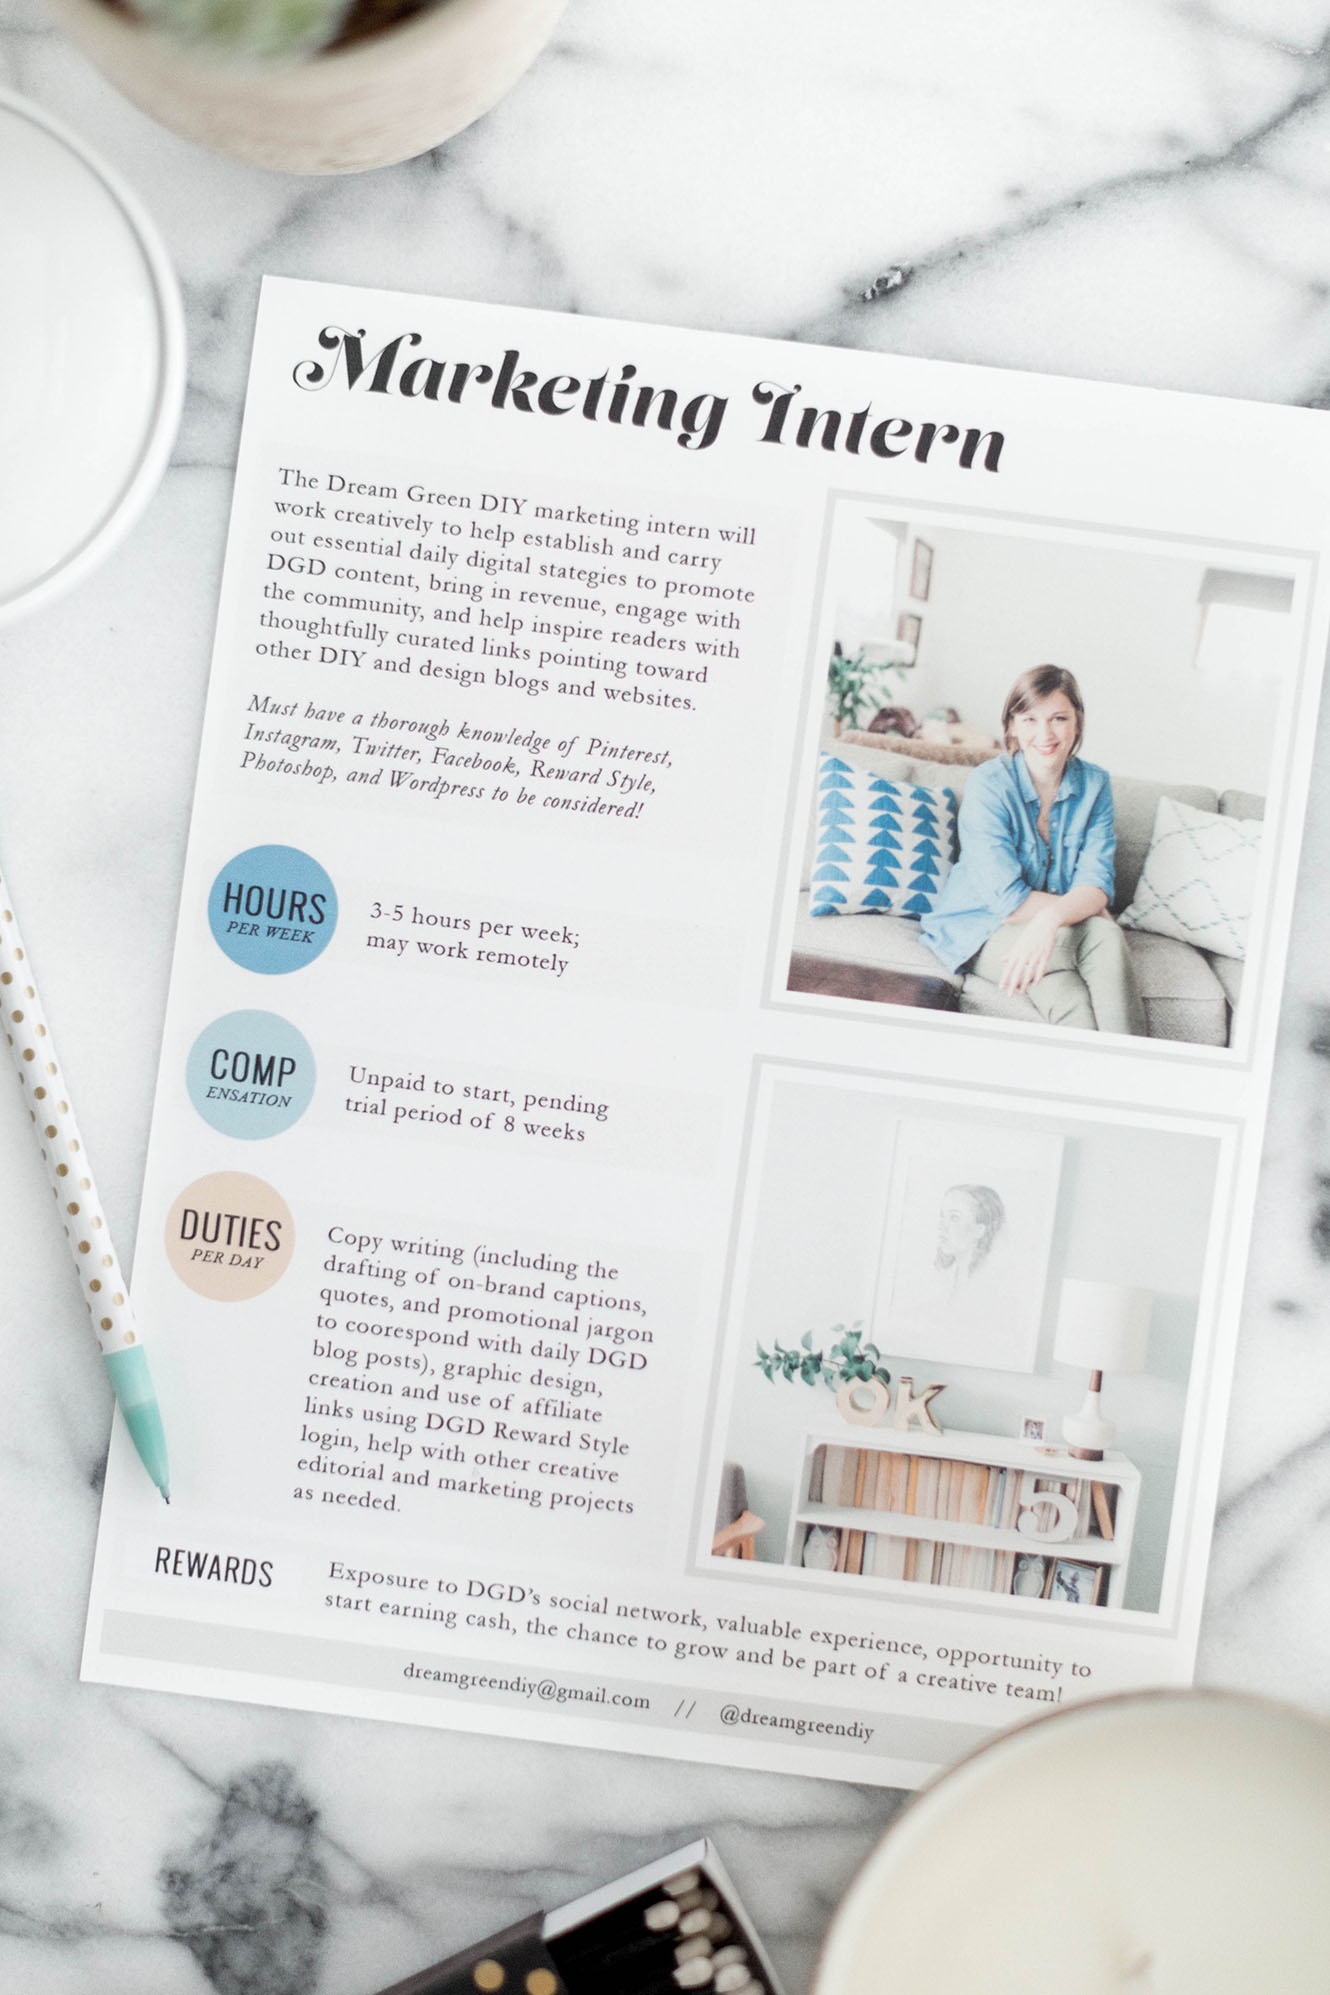 Dream Green DIY Is Looking For A Marketing Intern!